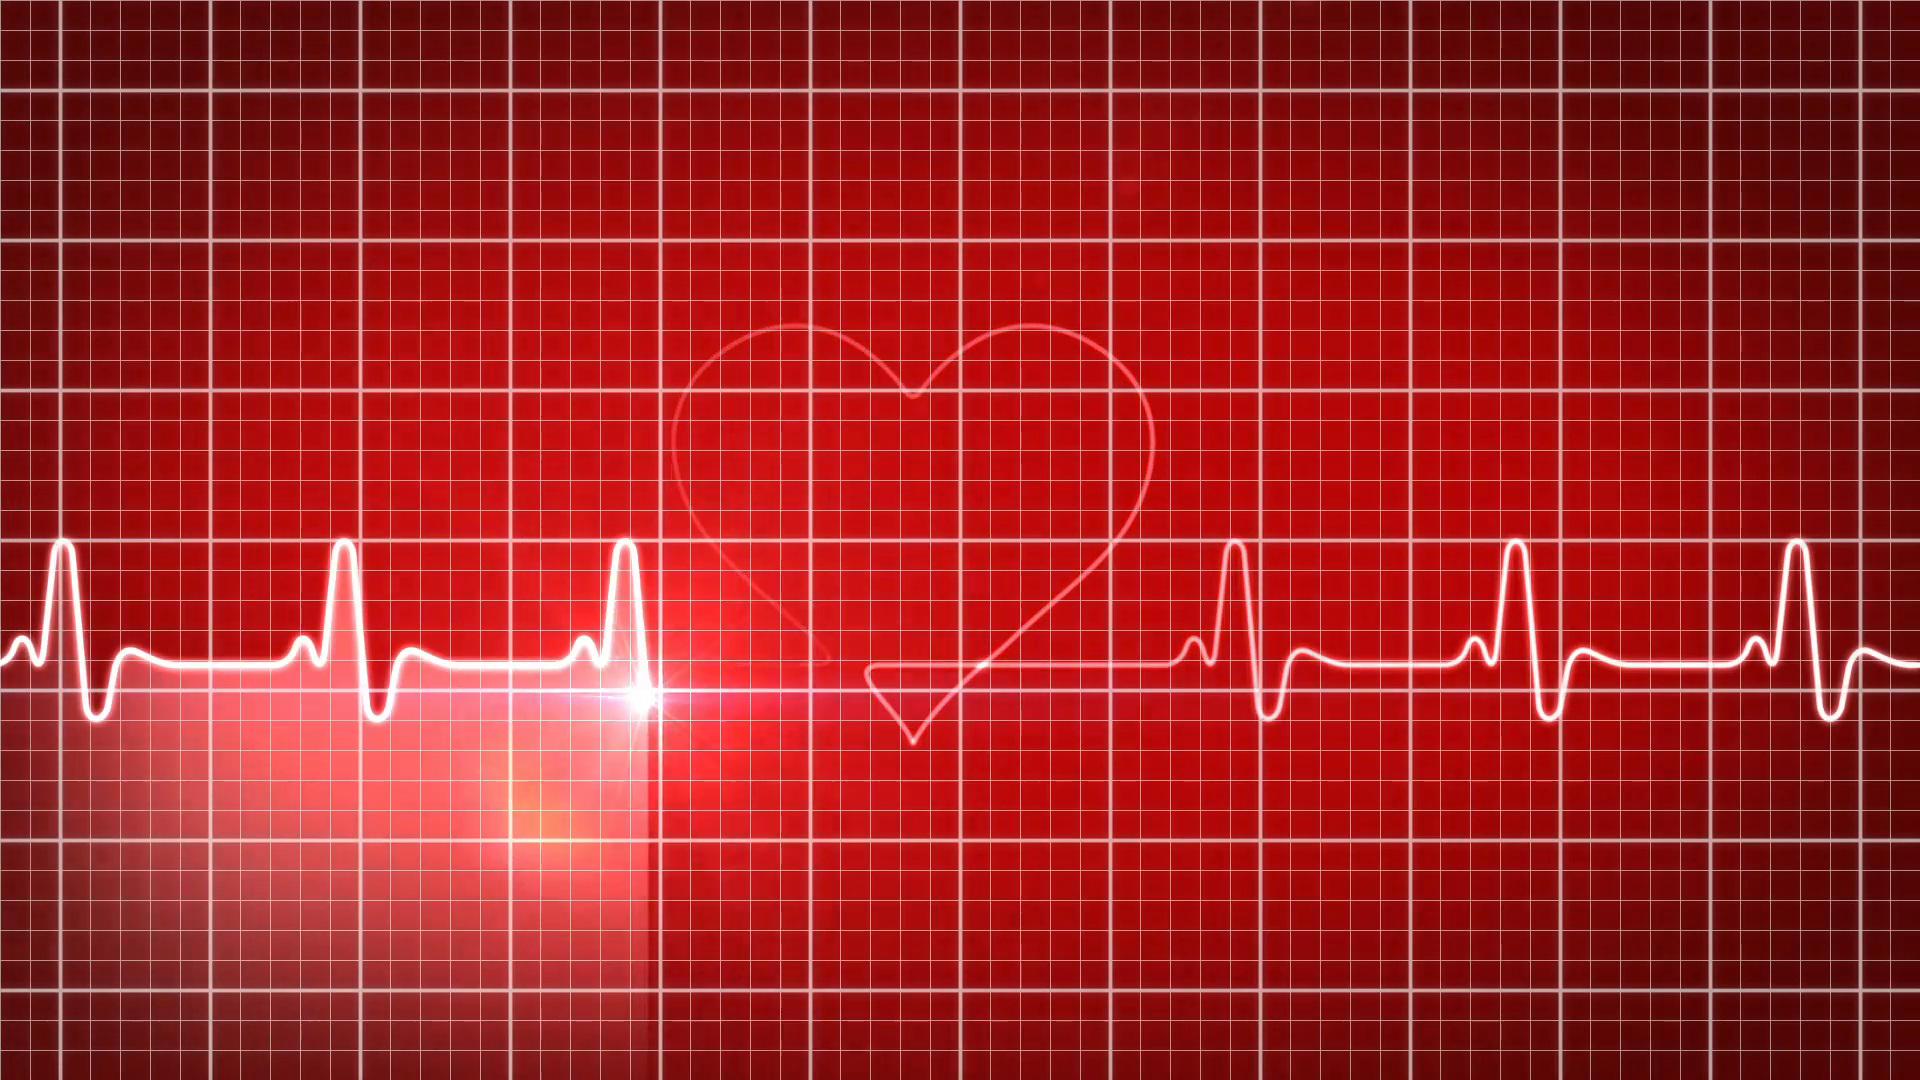 loop-ready-background-ekg-electrocardiogram-pulse-heart-looking-waveform_v1xnrczd__F0000